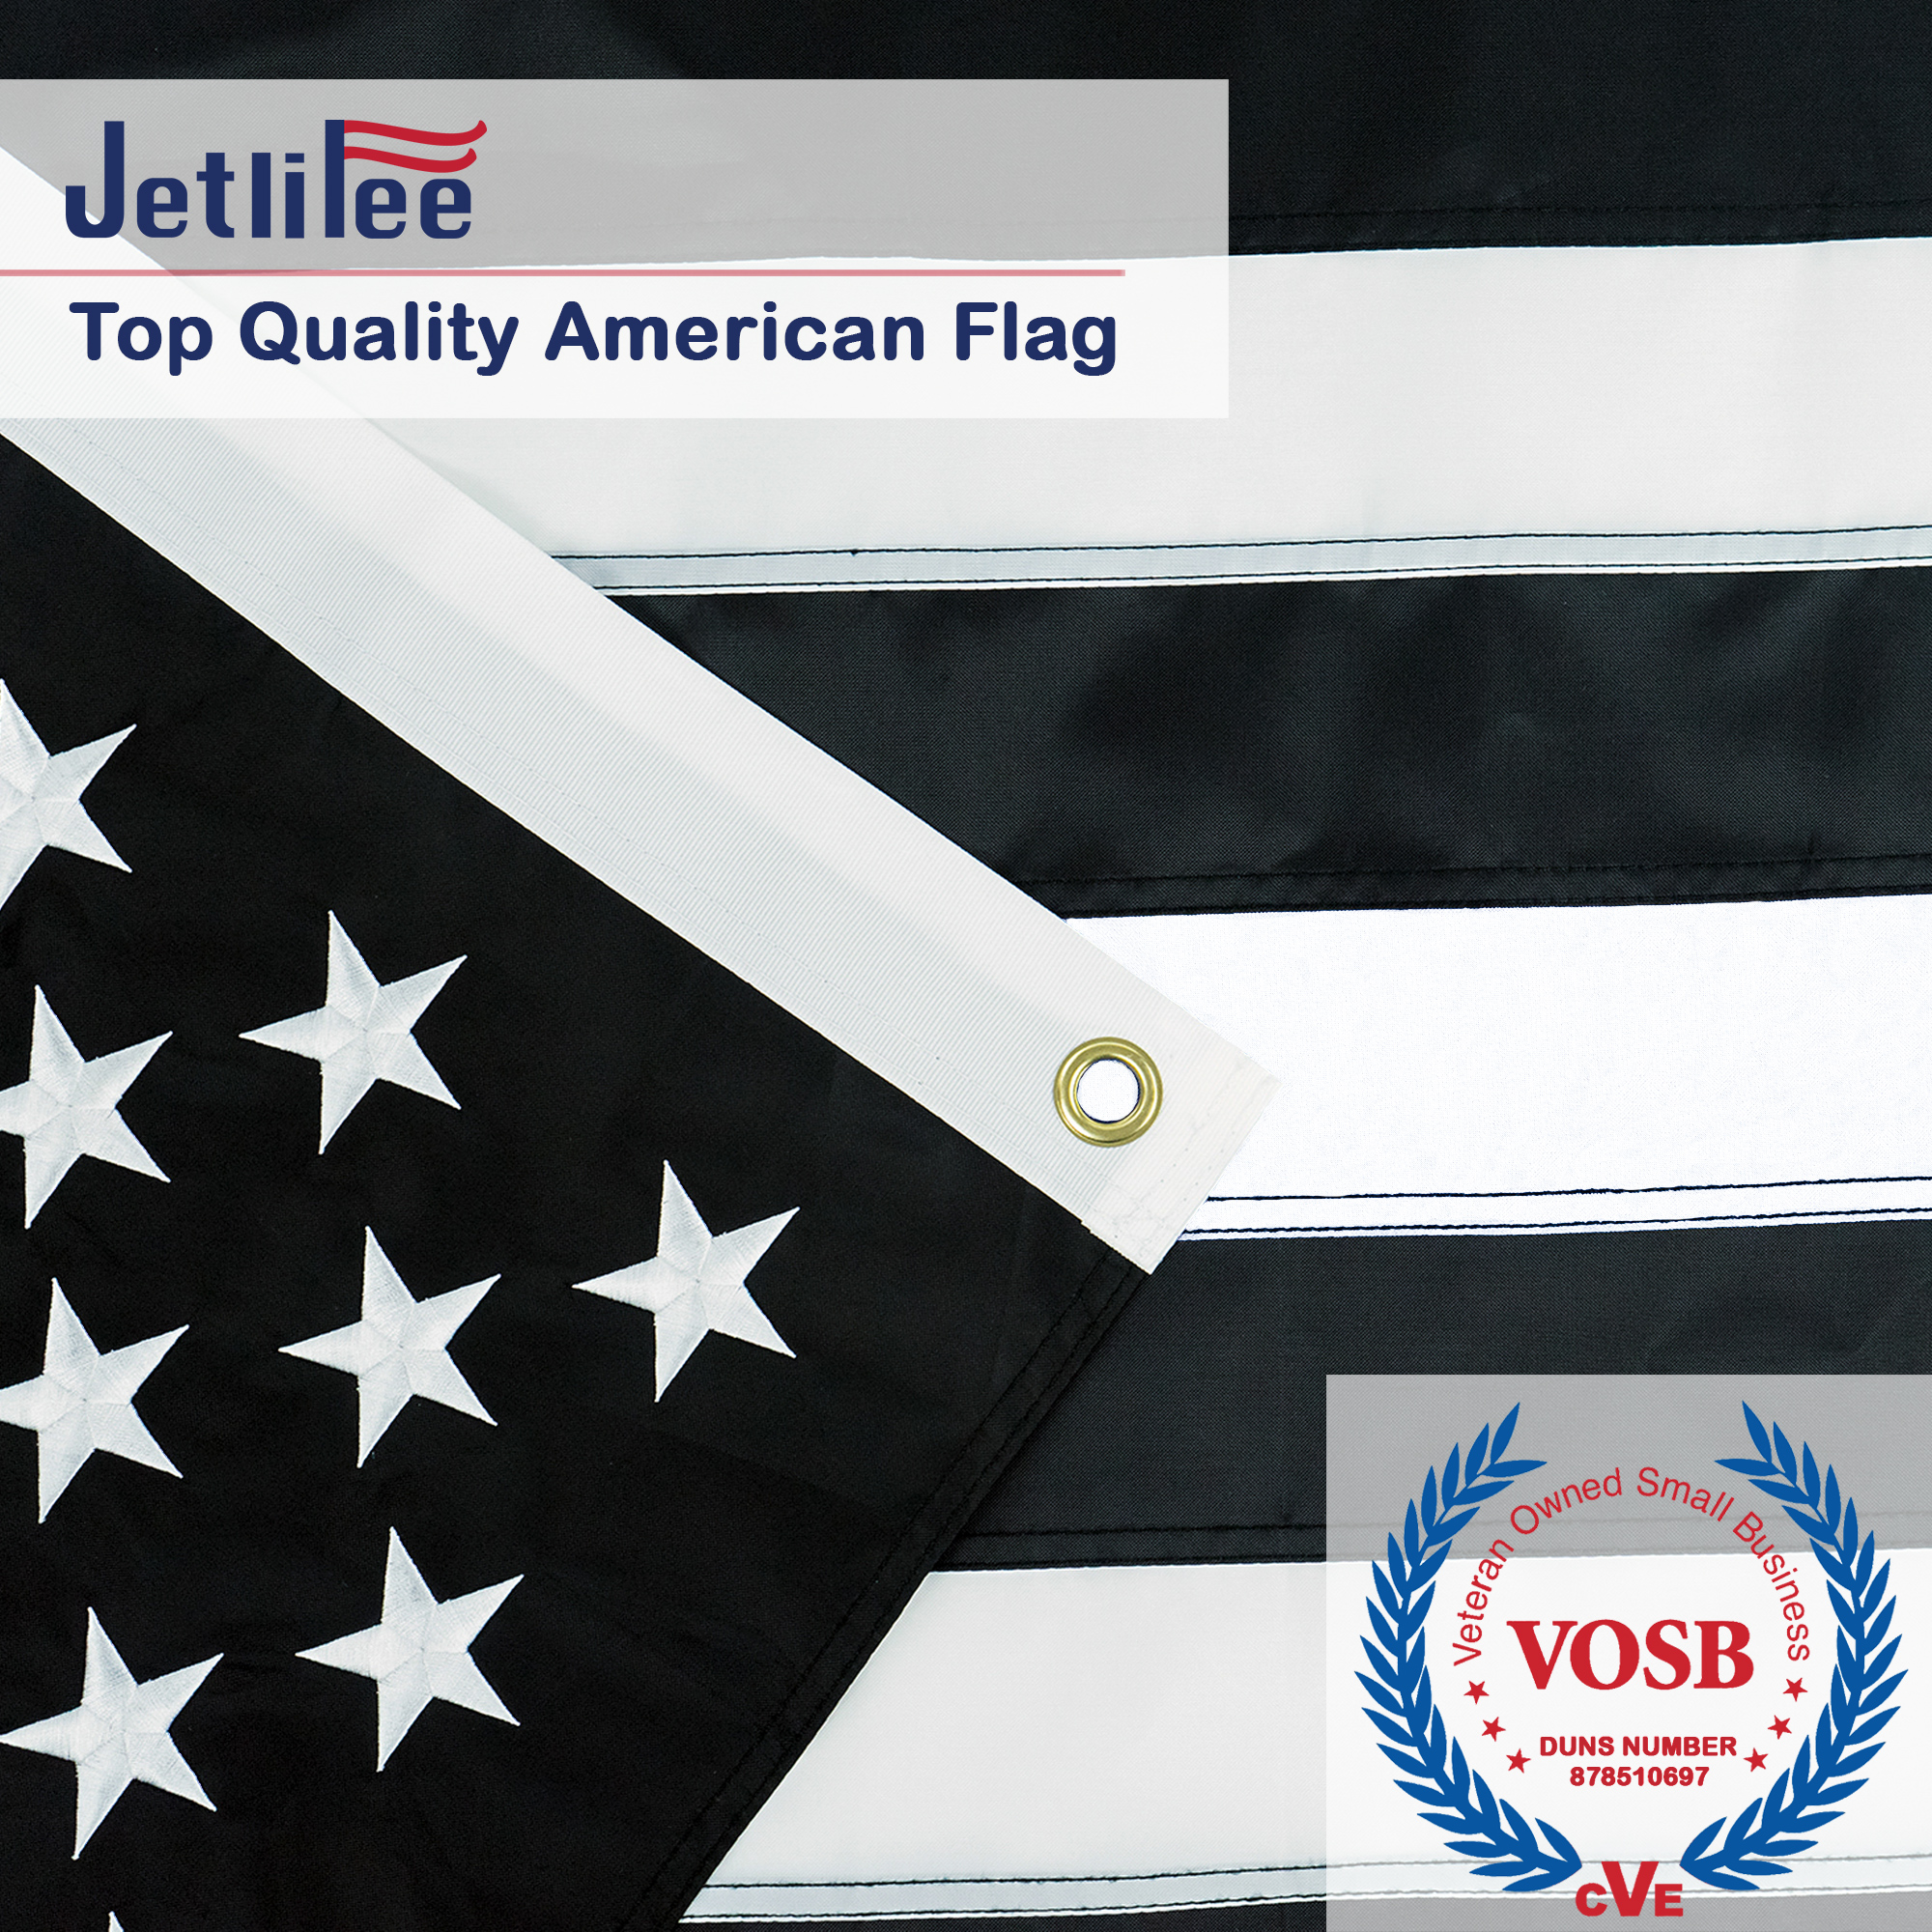 Jetlifee Black and White American Flag 3x5 Ft by US Veterans Owned Biz. Embroidered Stars, Sewn Stripes and Long Lasting Nylon, Brass Grommets 3 X 5 Foot Black and White Flags